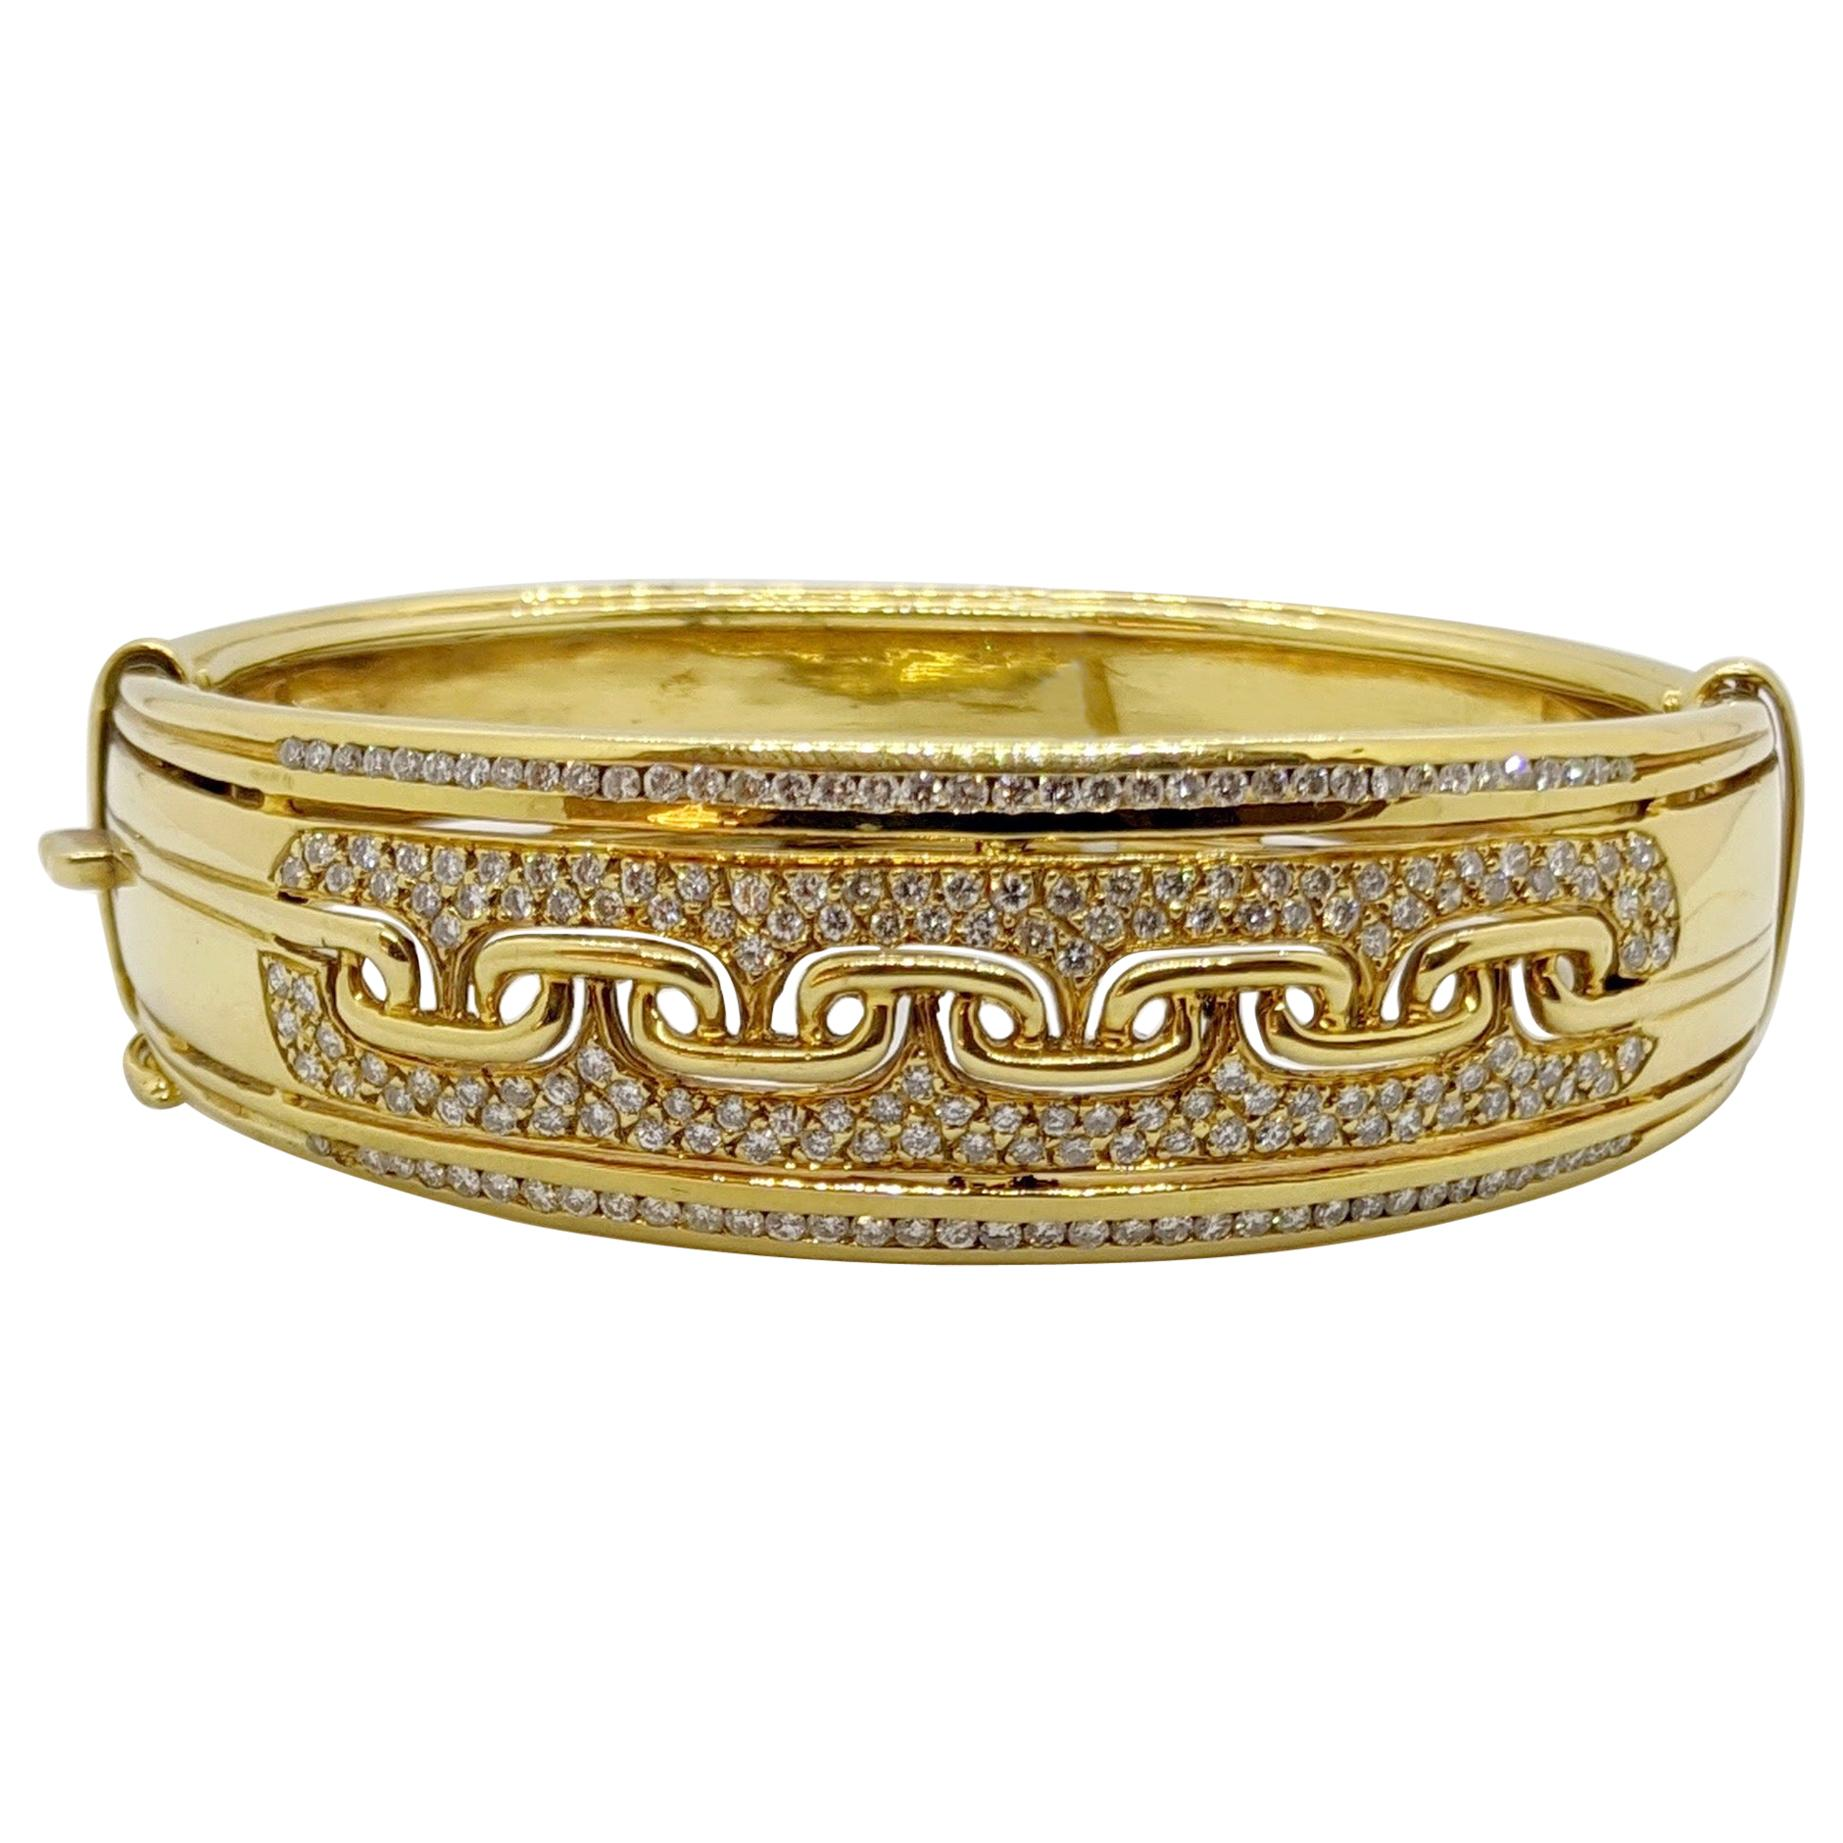 18KT Yellow Gold Wide Cuff Bracelet with 3.32Ct, Diamonds & Gold Links Pattern